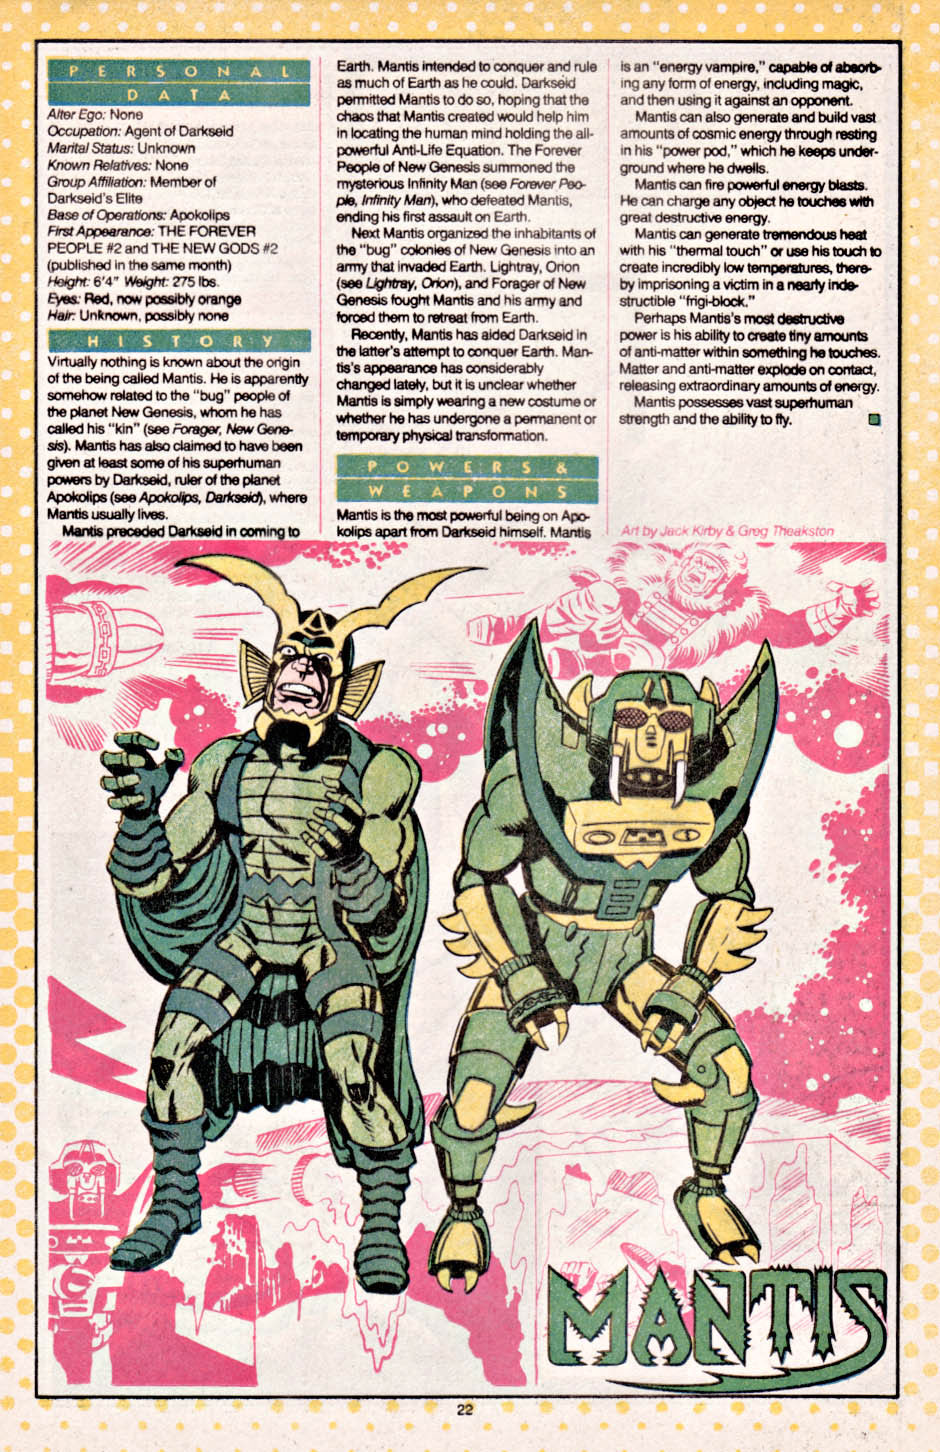 Mantis by Jack Kirby from Who's Who